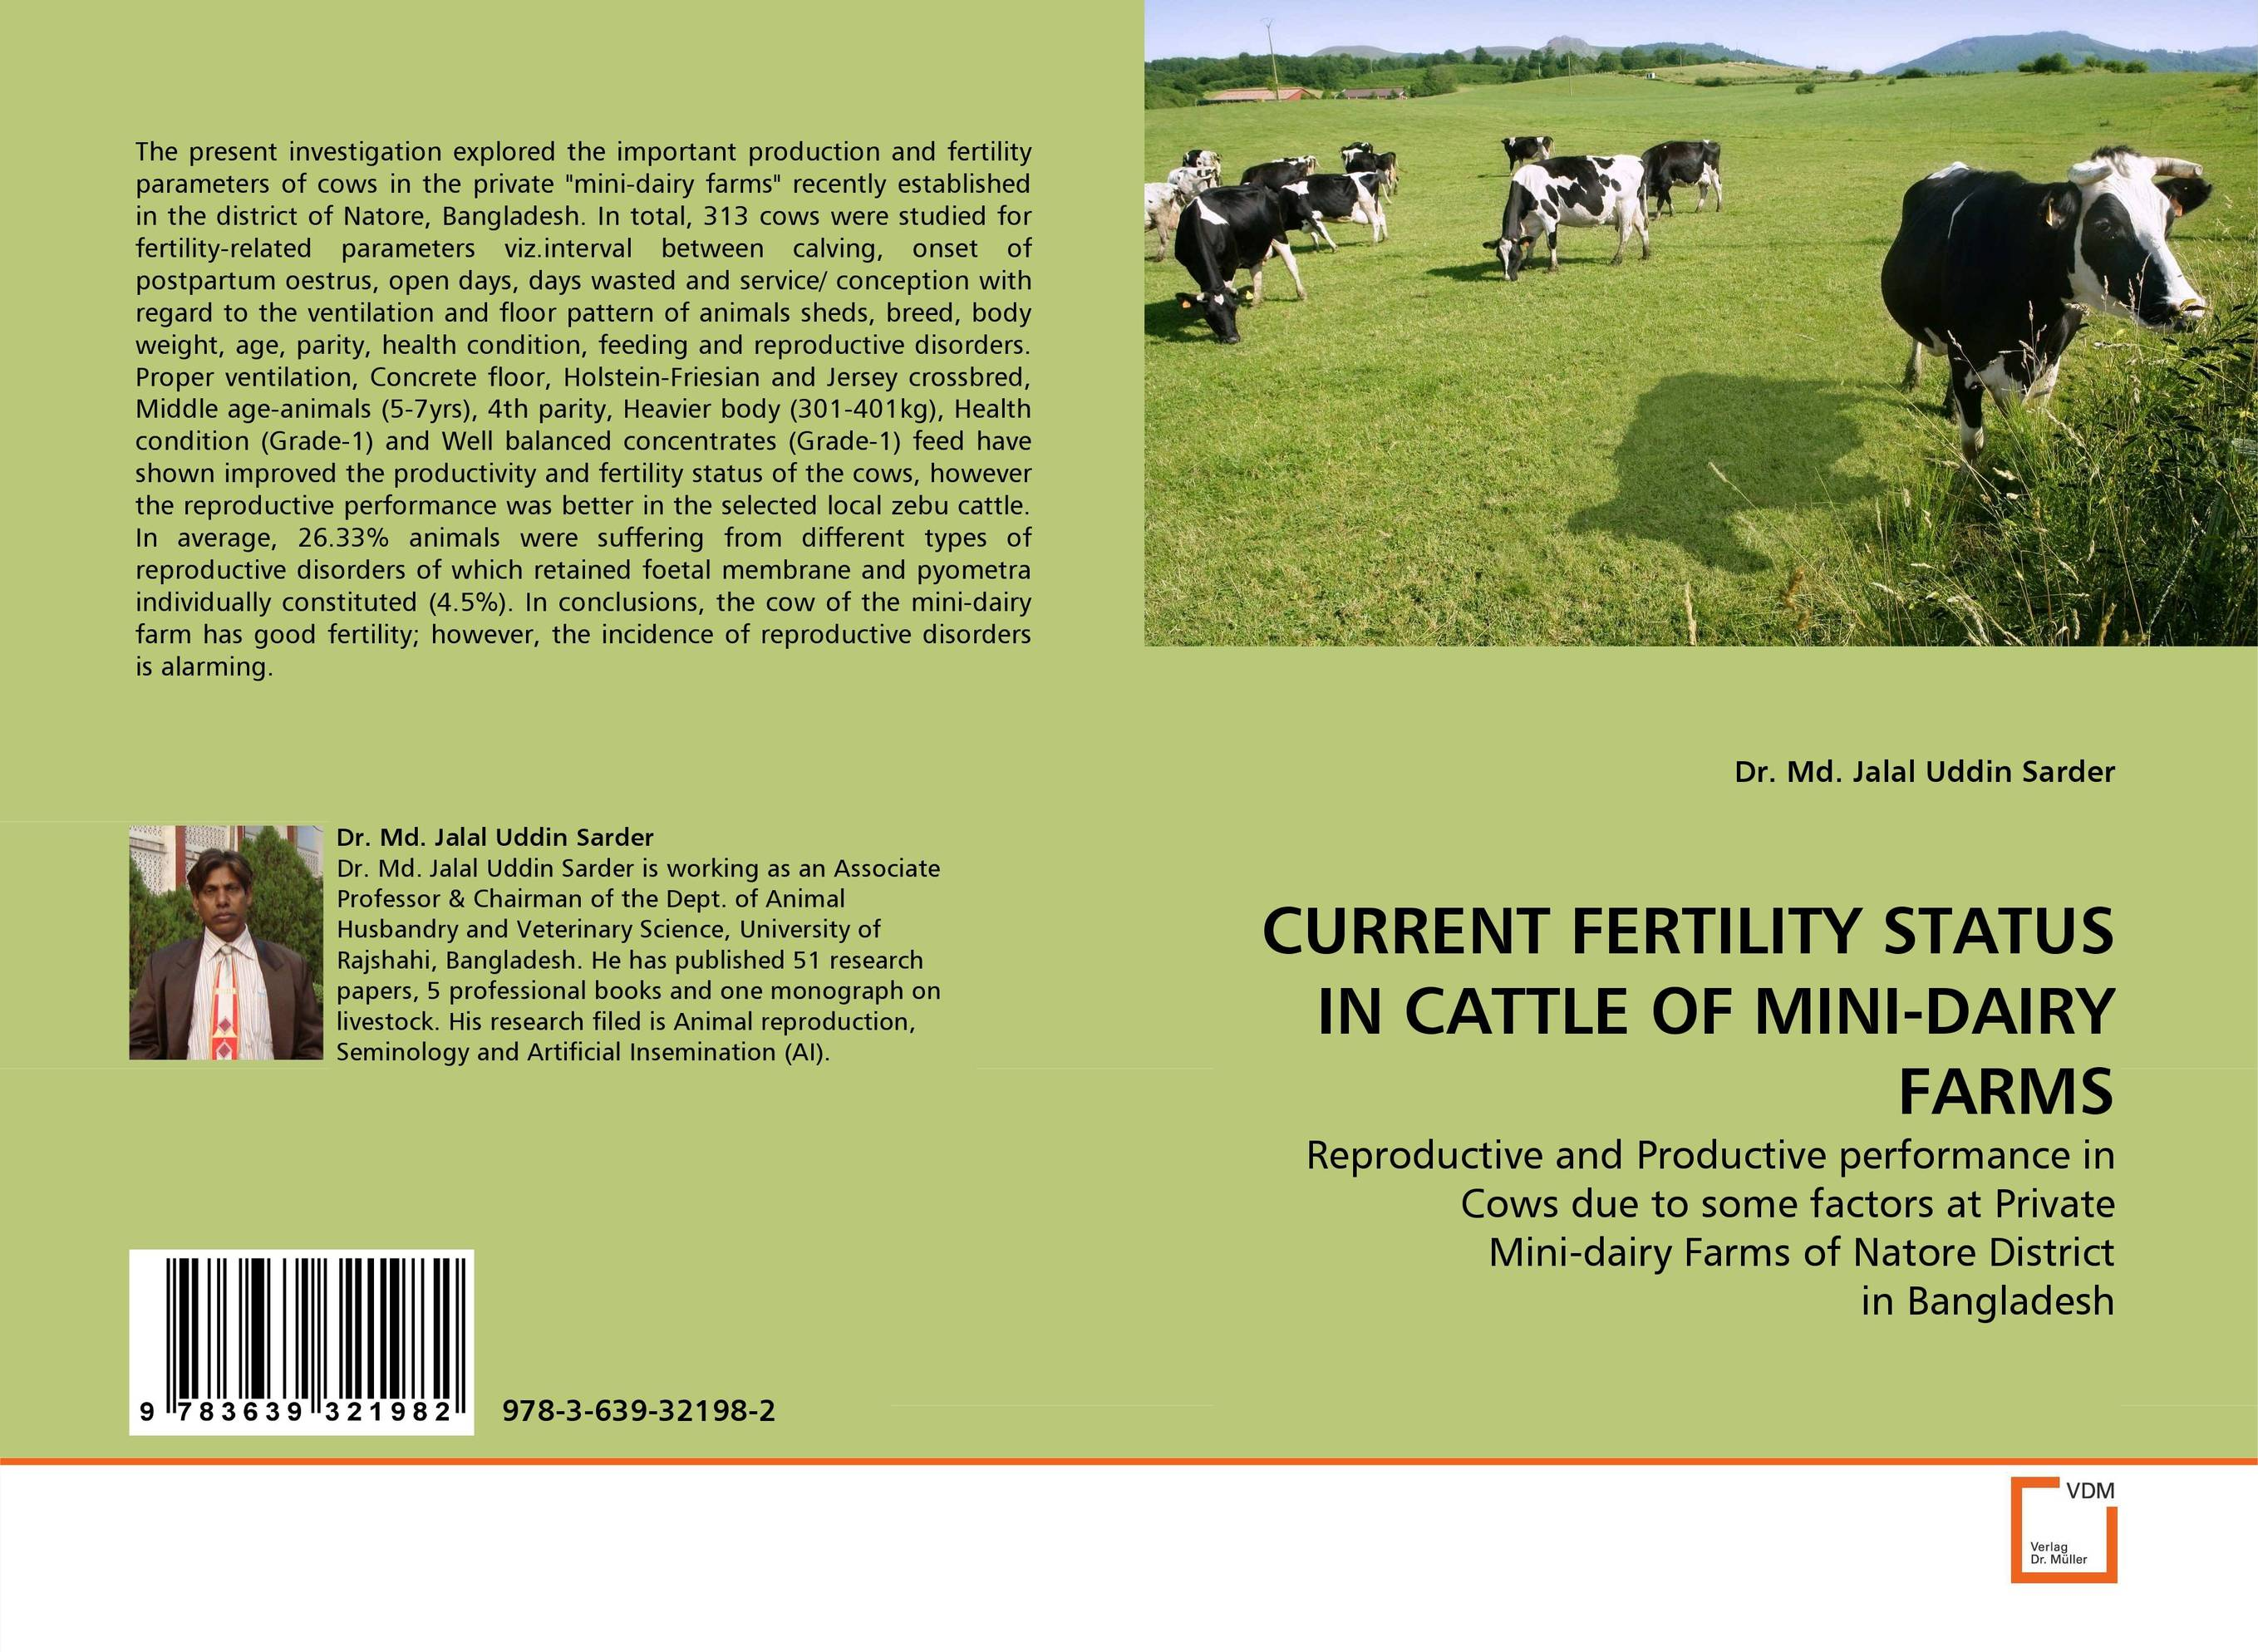 CURRENT FERTILITY STATUS IN CATTLE OF MINI-DAIRY FARMS current fertility status in cattle of mini dairy farms